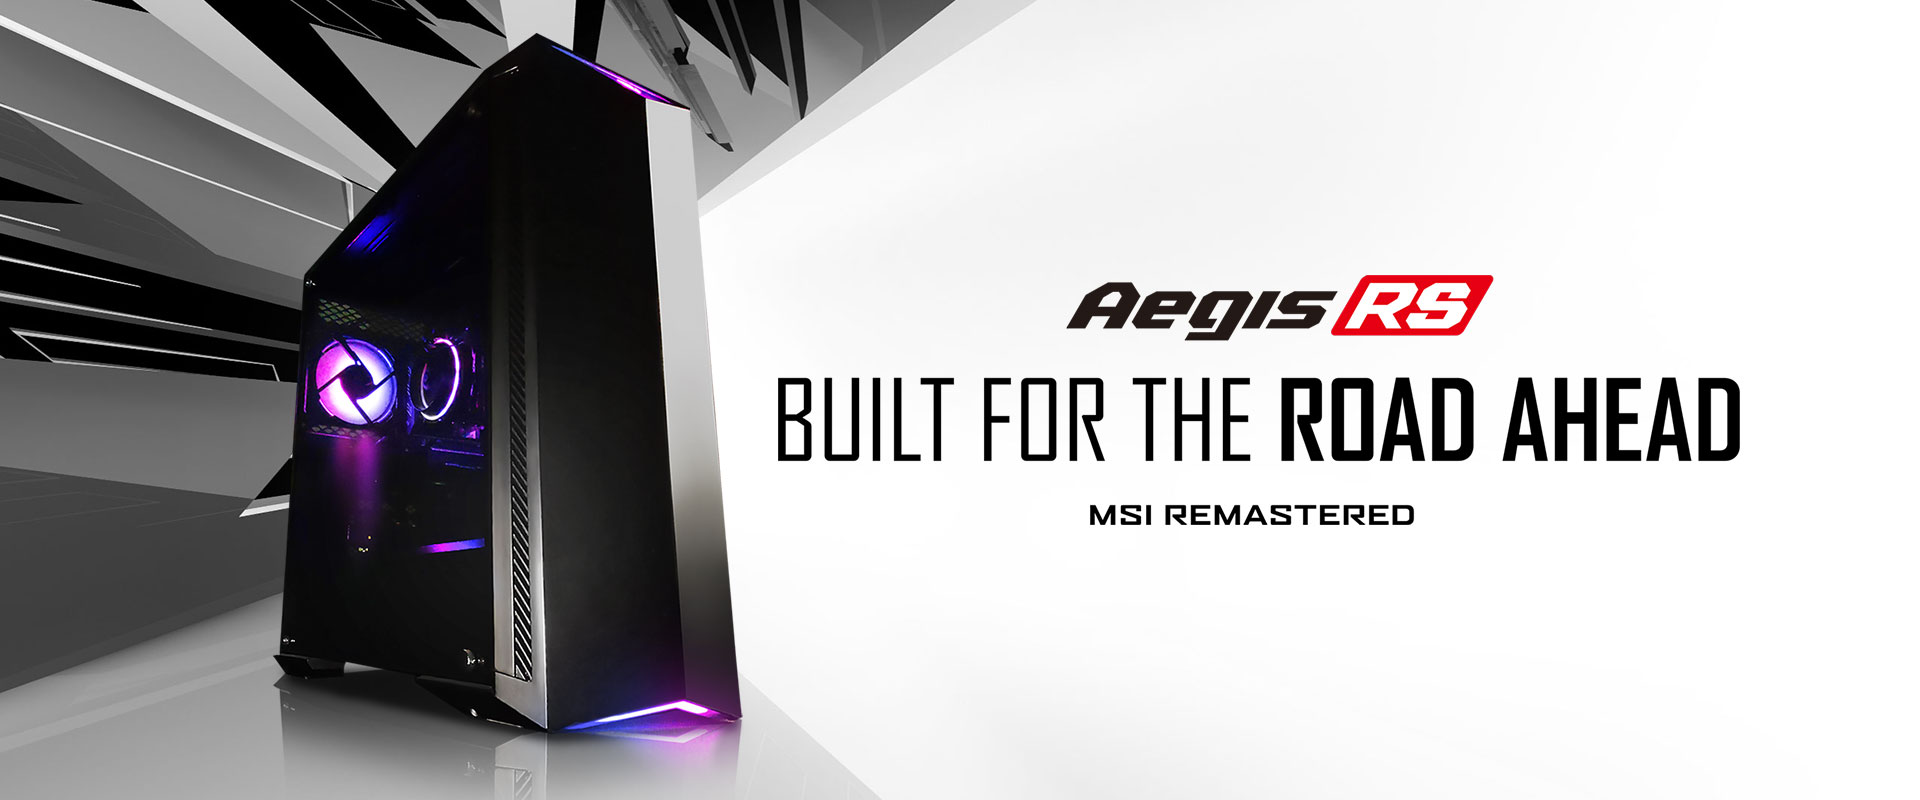 Hero Image: Aegis RS product image. The text right to it says: Aegis RS. BUILT FOR THE ROAD AHEAD. MSI REMASTERED